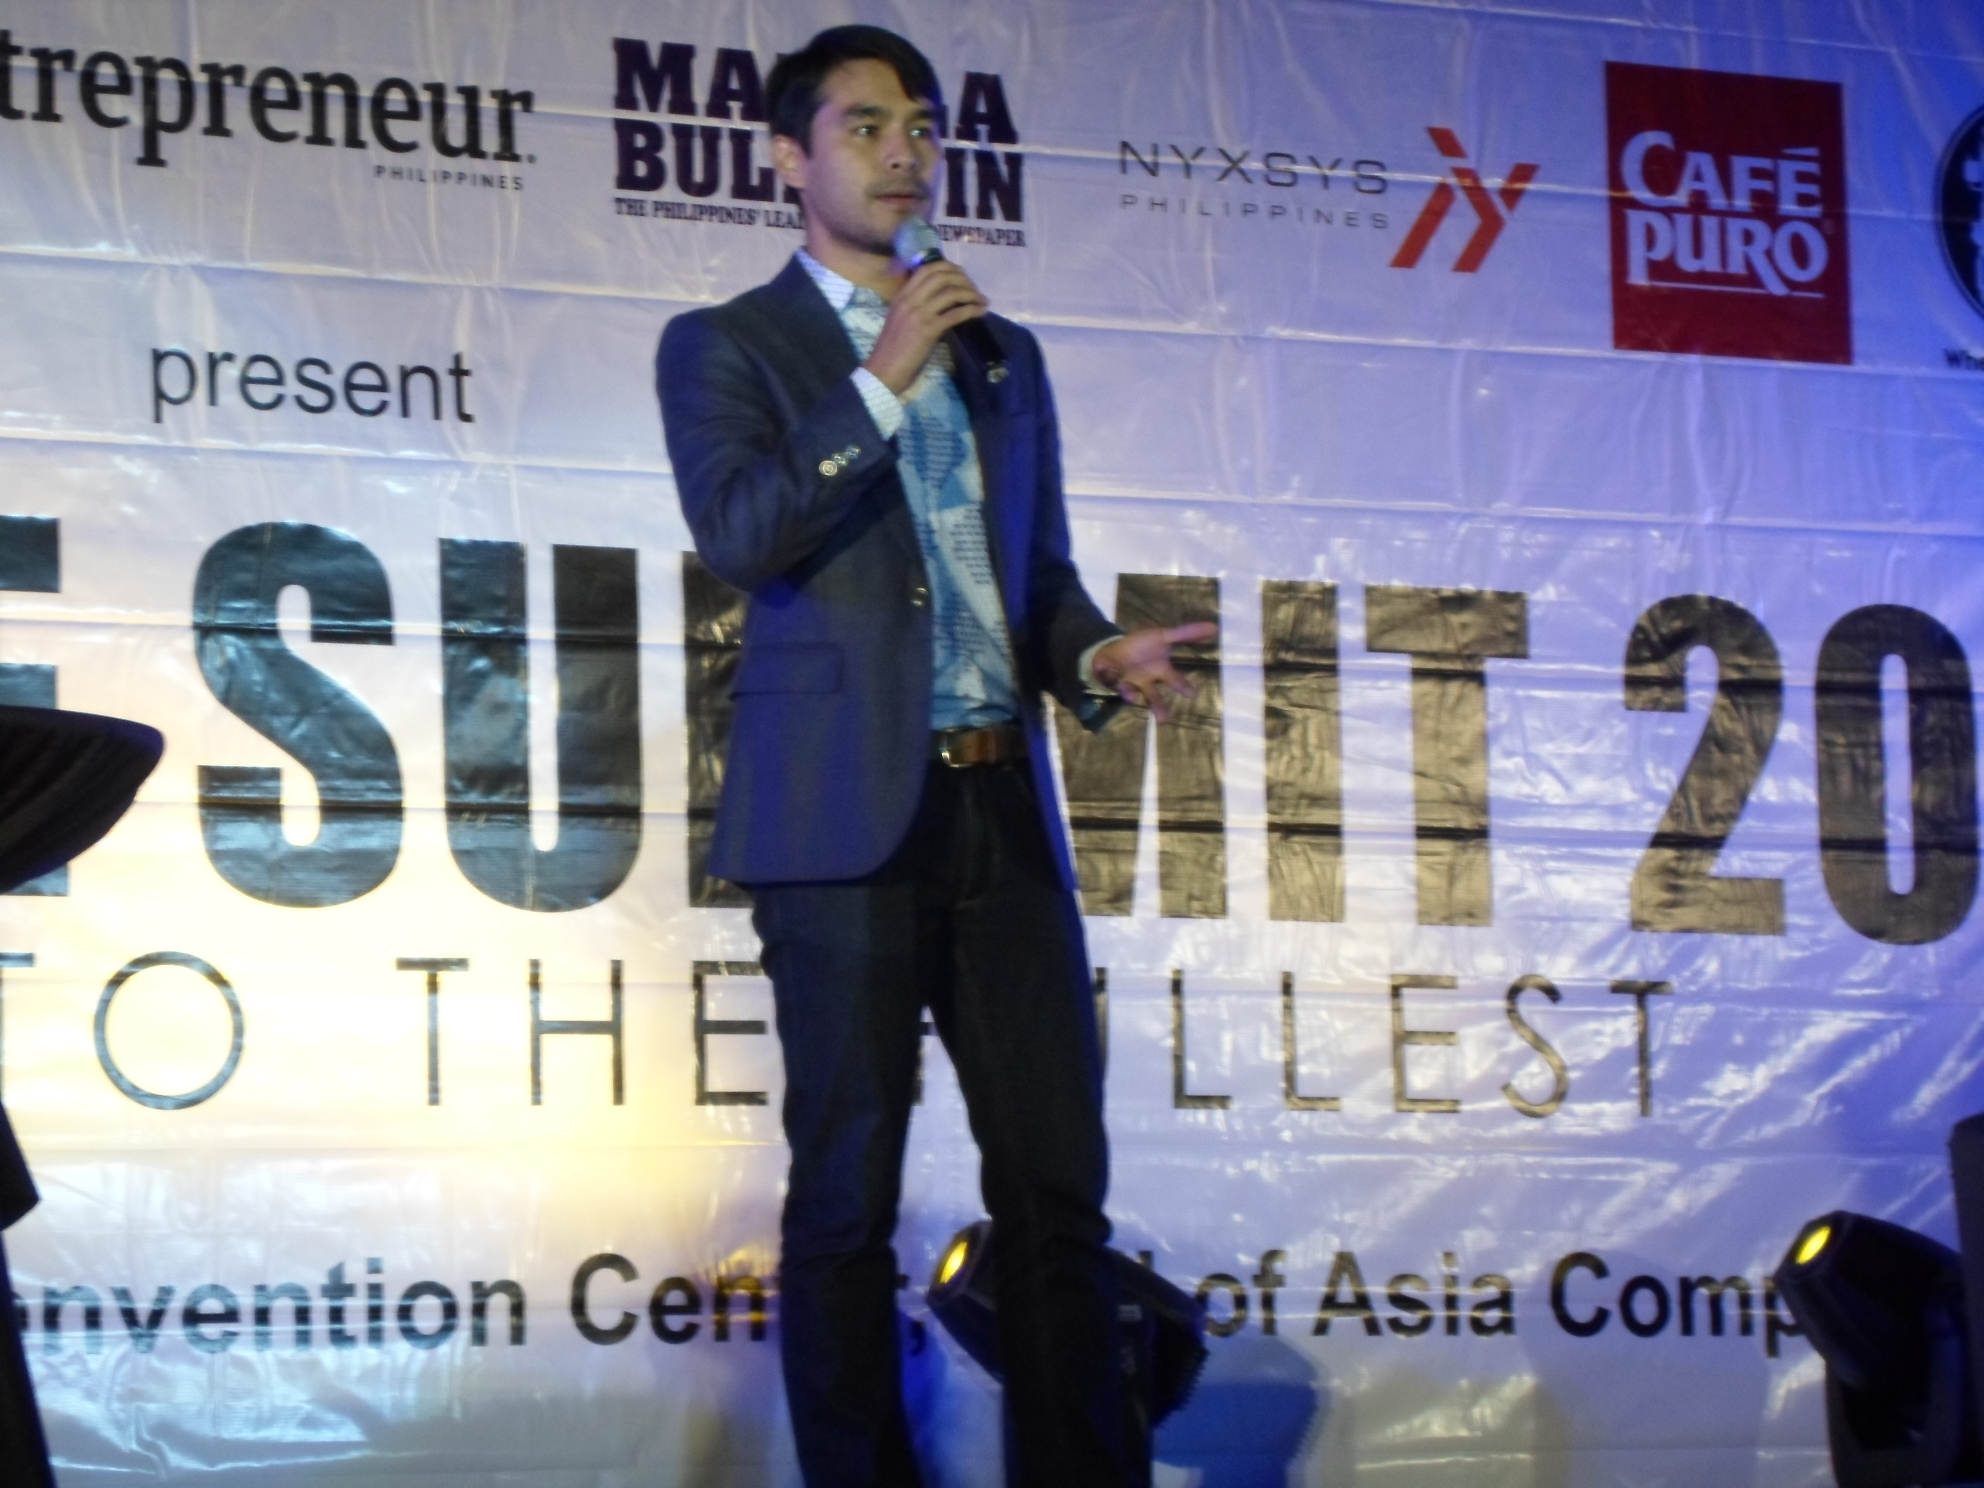 Excellence Summit 2014 shares insights and inspiration from celebrity speakers